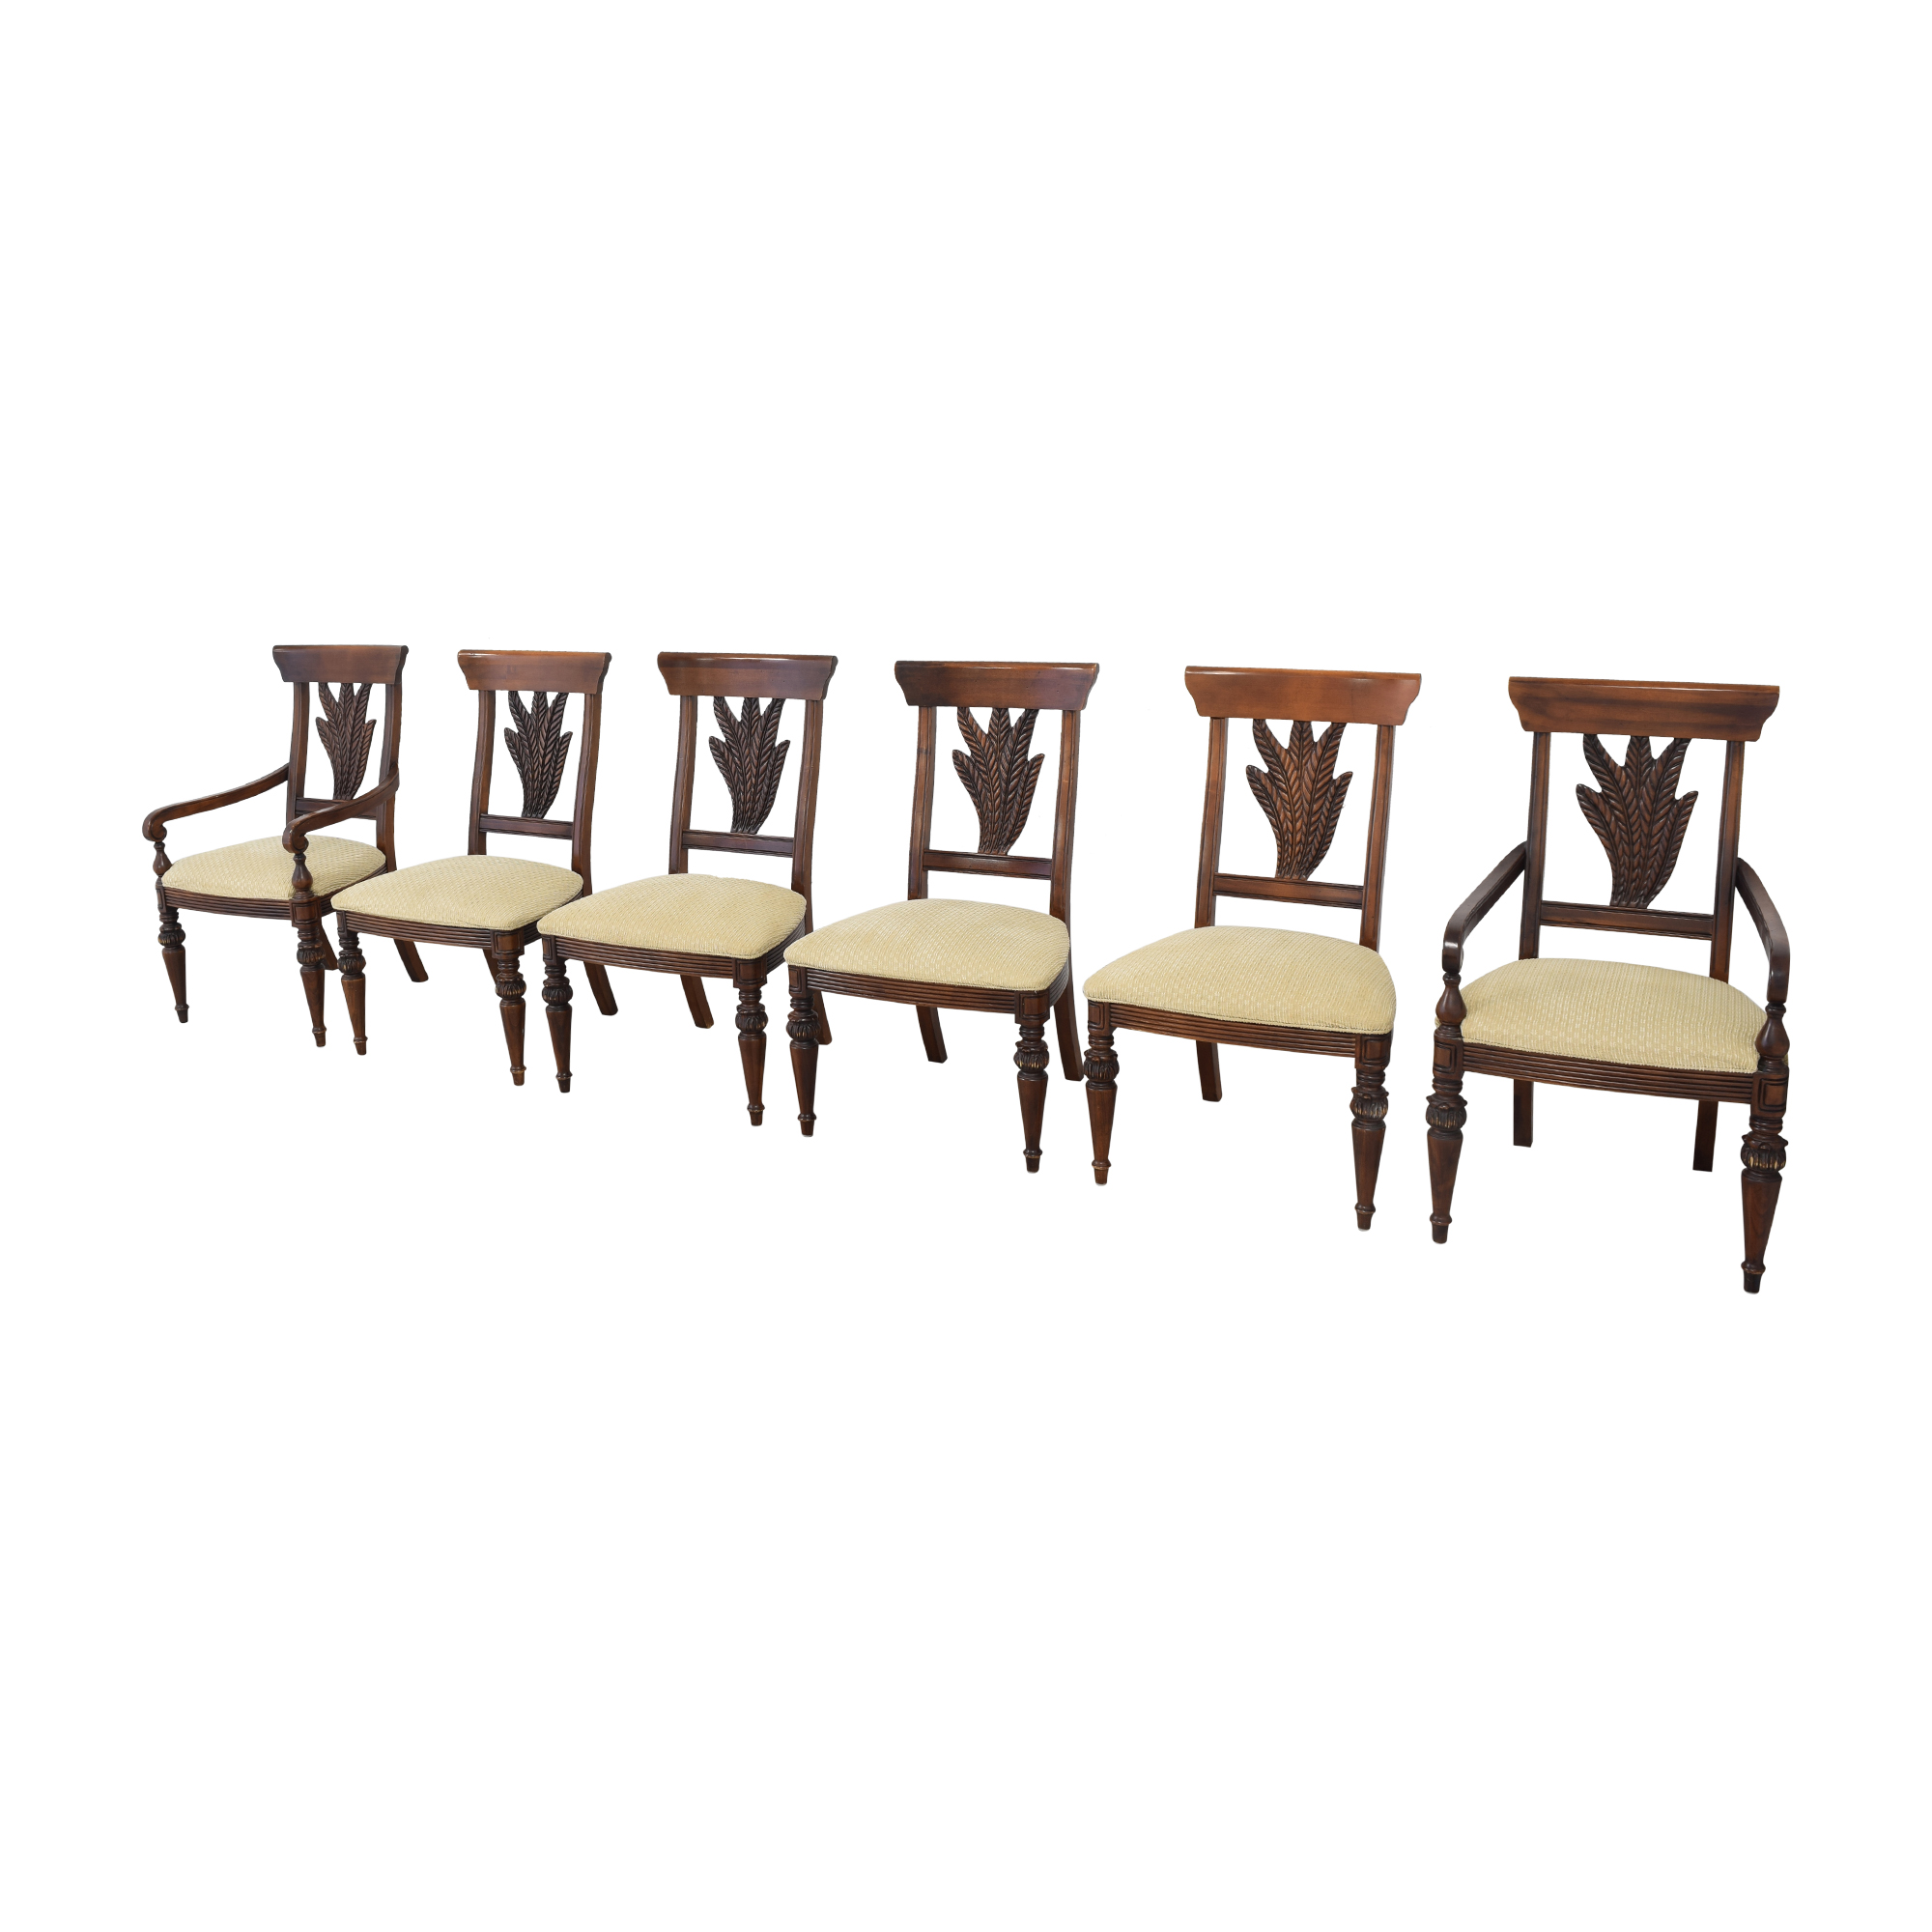 Thomasville Thomasville Ernest Hemingway Collection Dining Chairs Dining Chairs